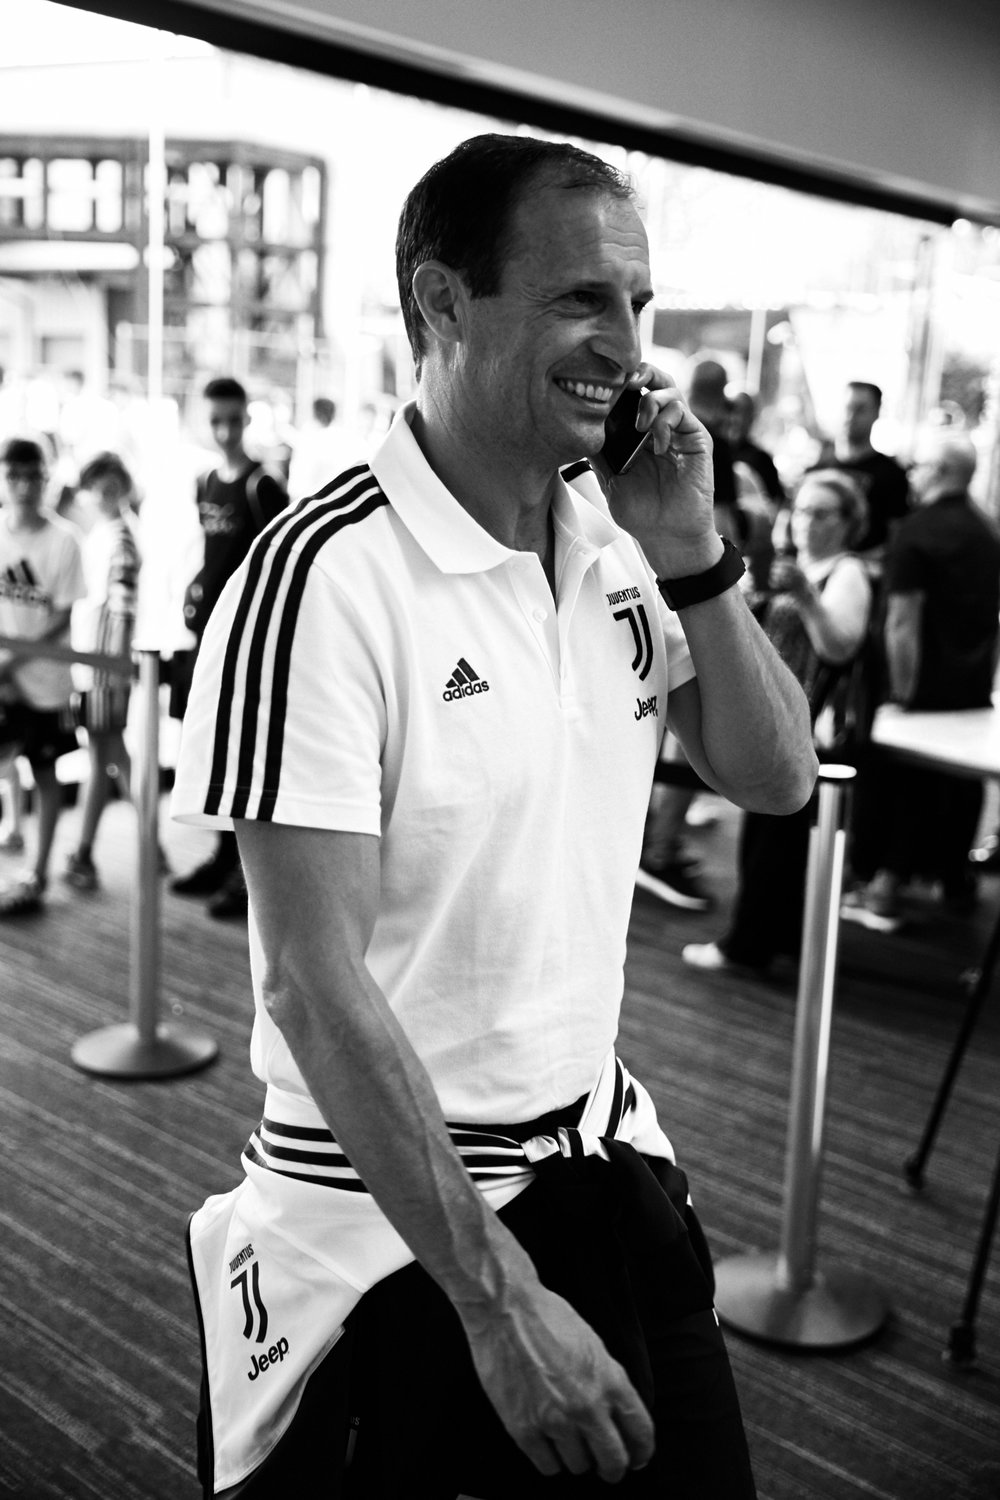 Massimiliano Allegri, Juve manager